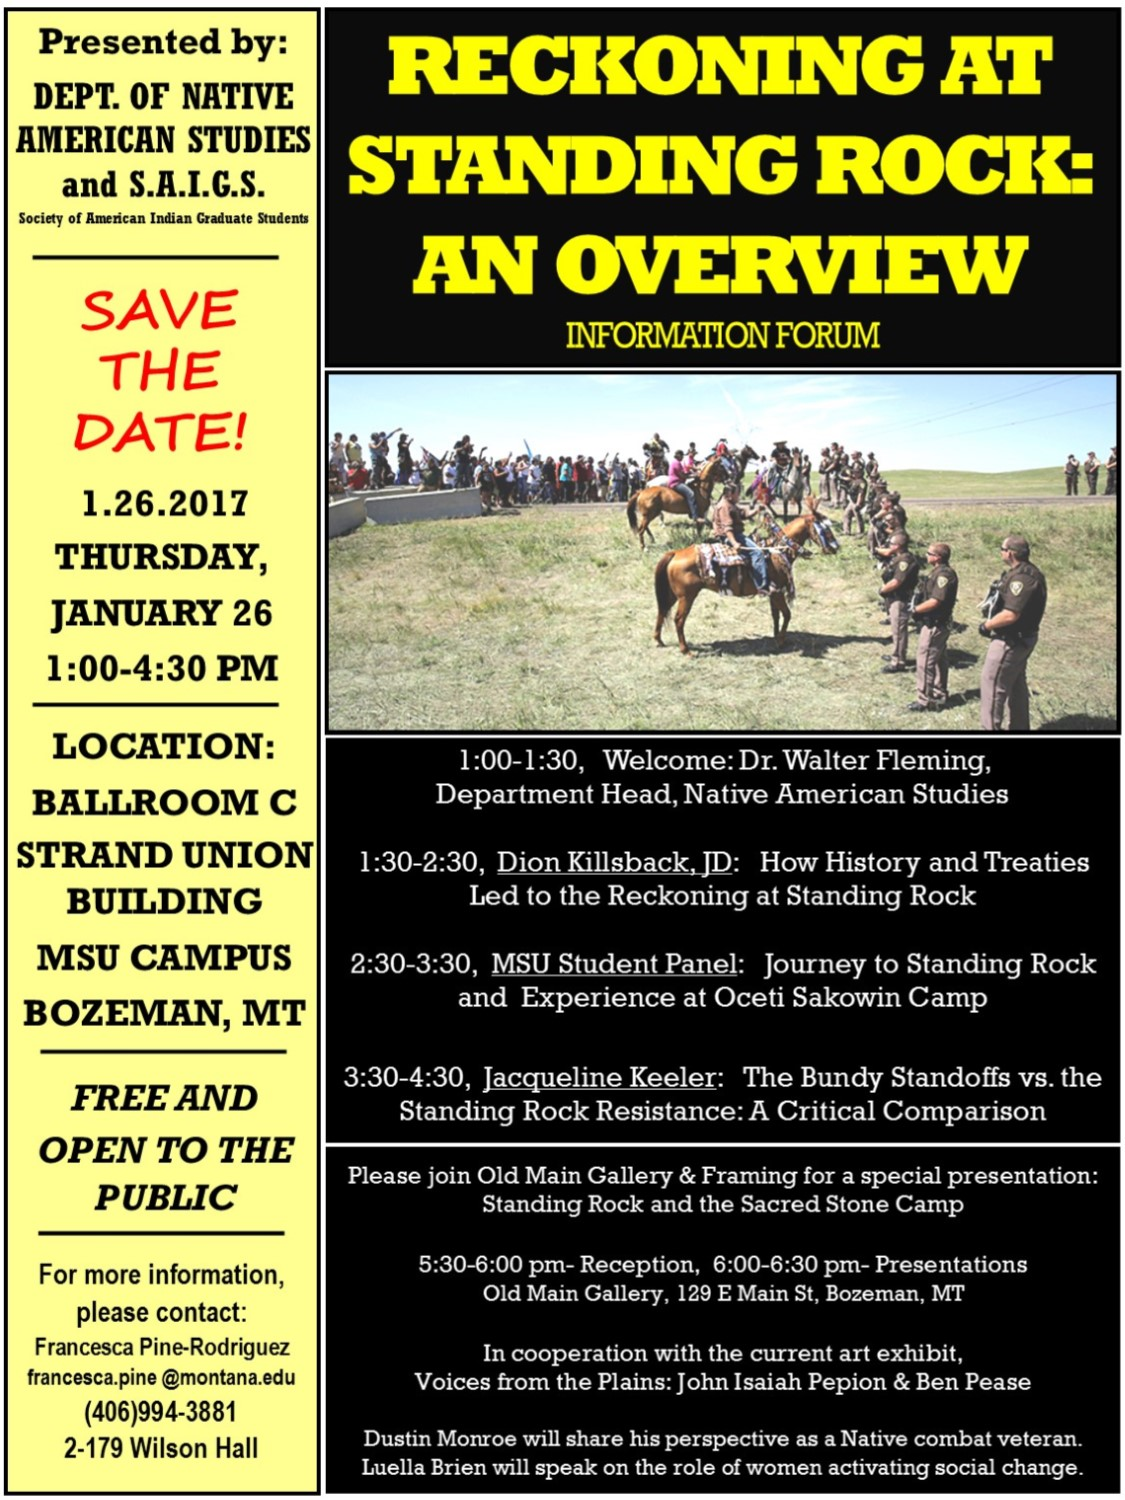 Reckoning at Standing Rock Event Flyer